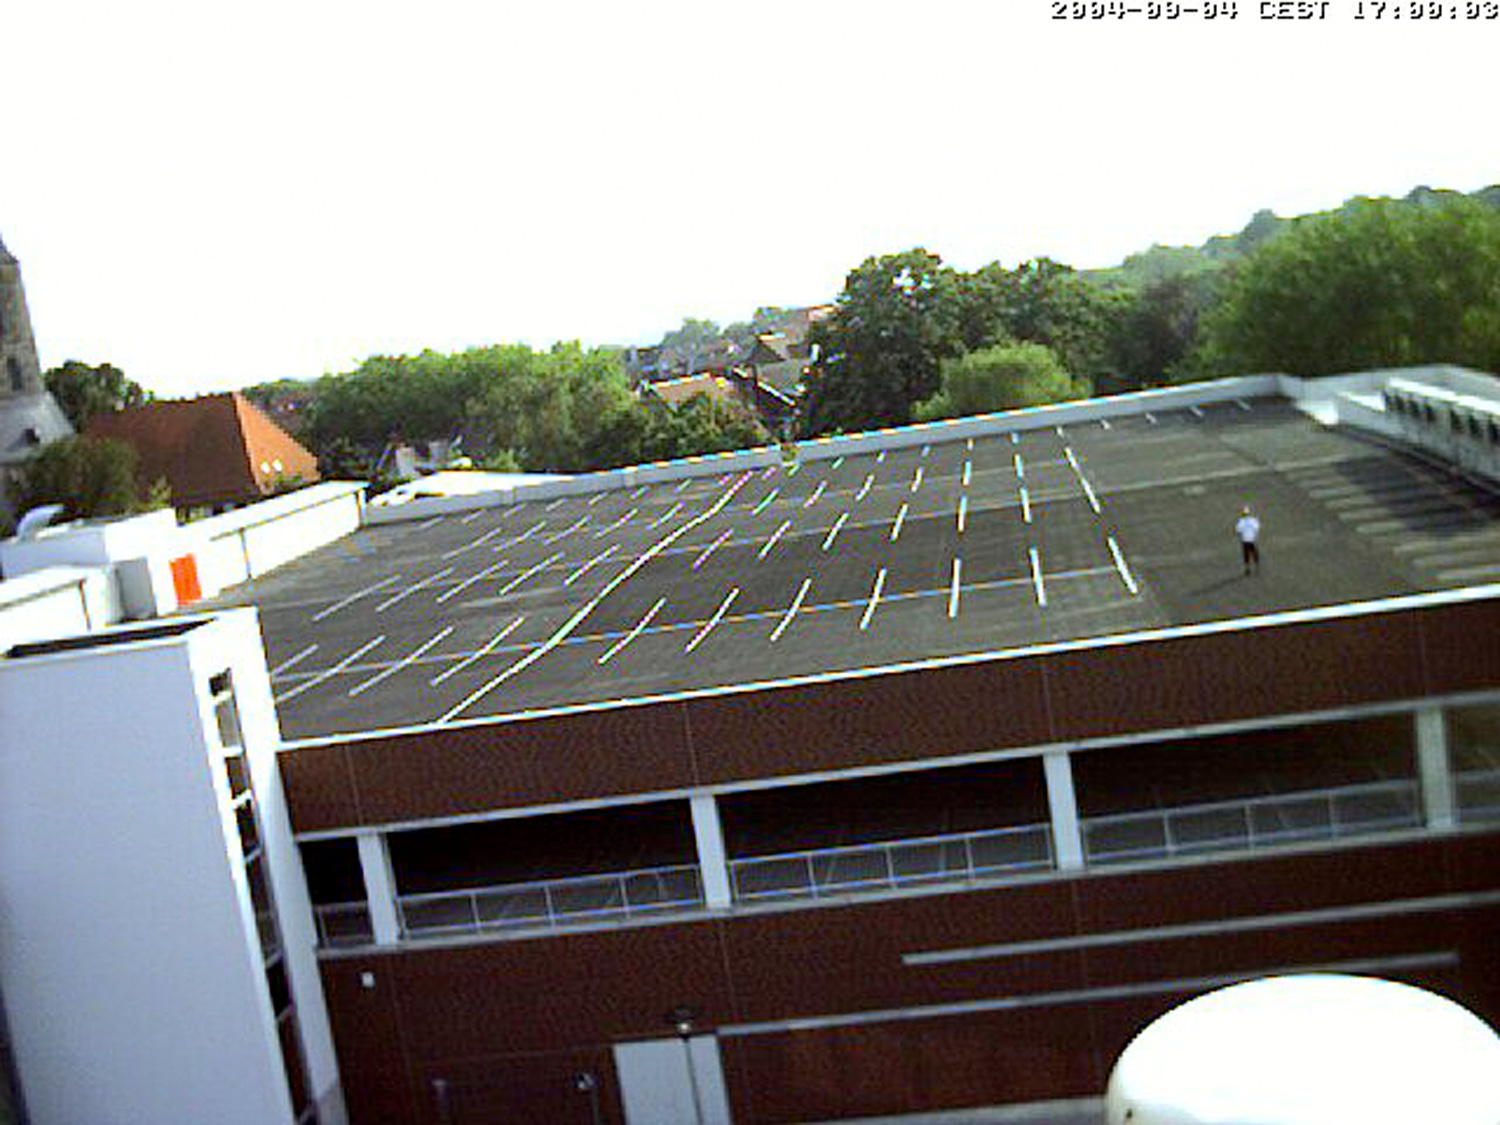 Roof Parking Deck, Werne, Germany, 2004